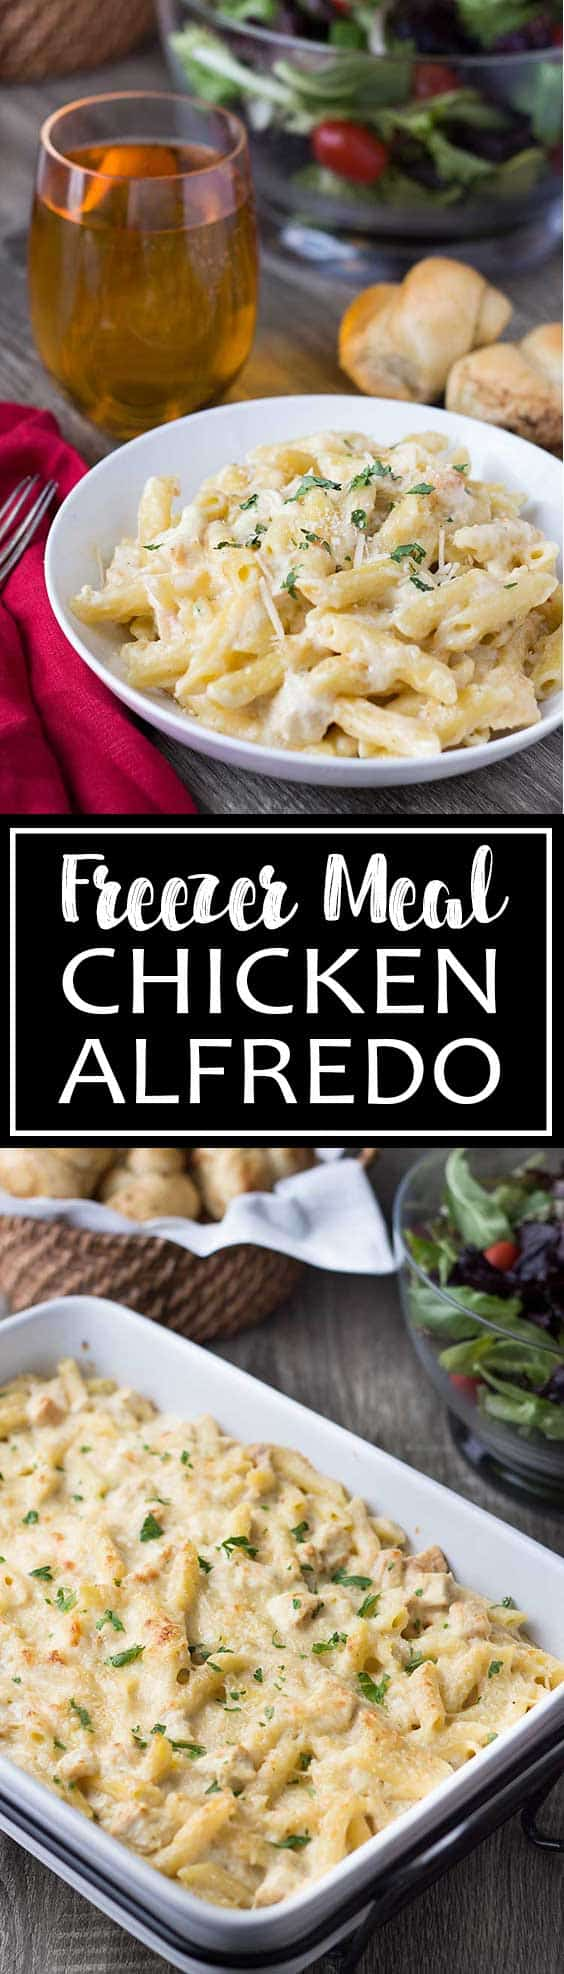 Freezer Meal: Chicken Alfredo Bake